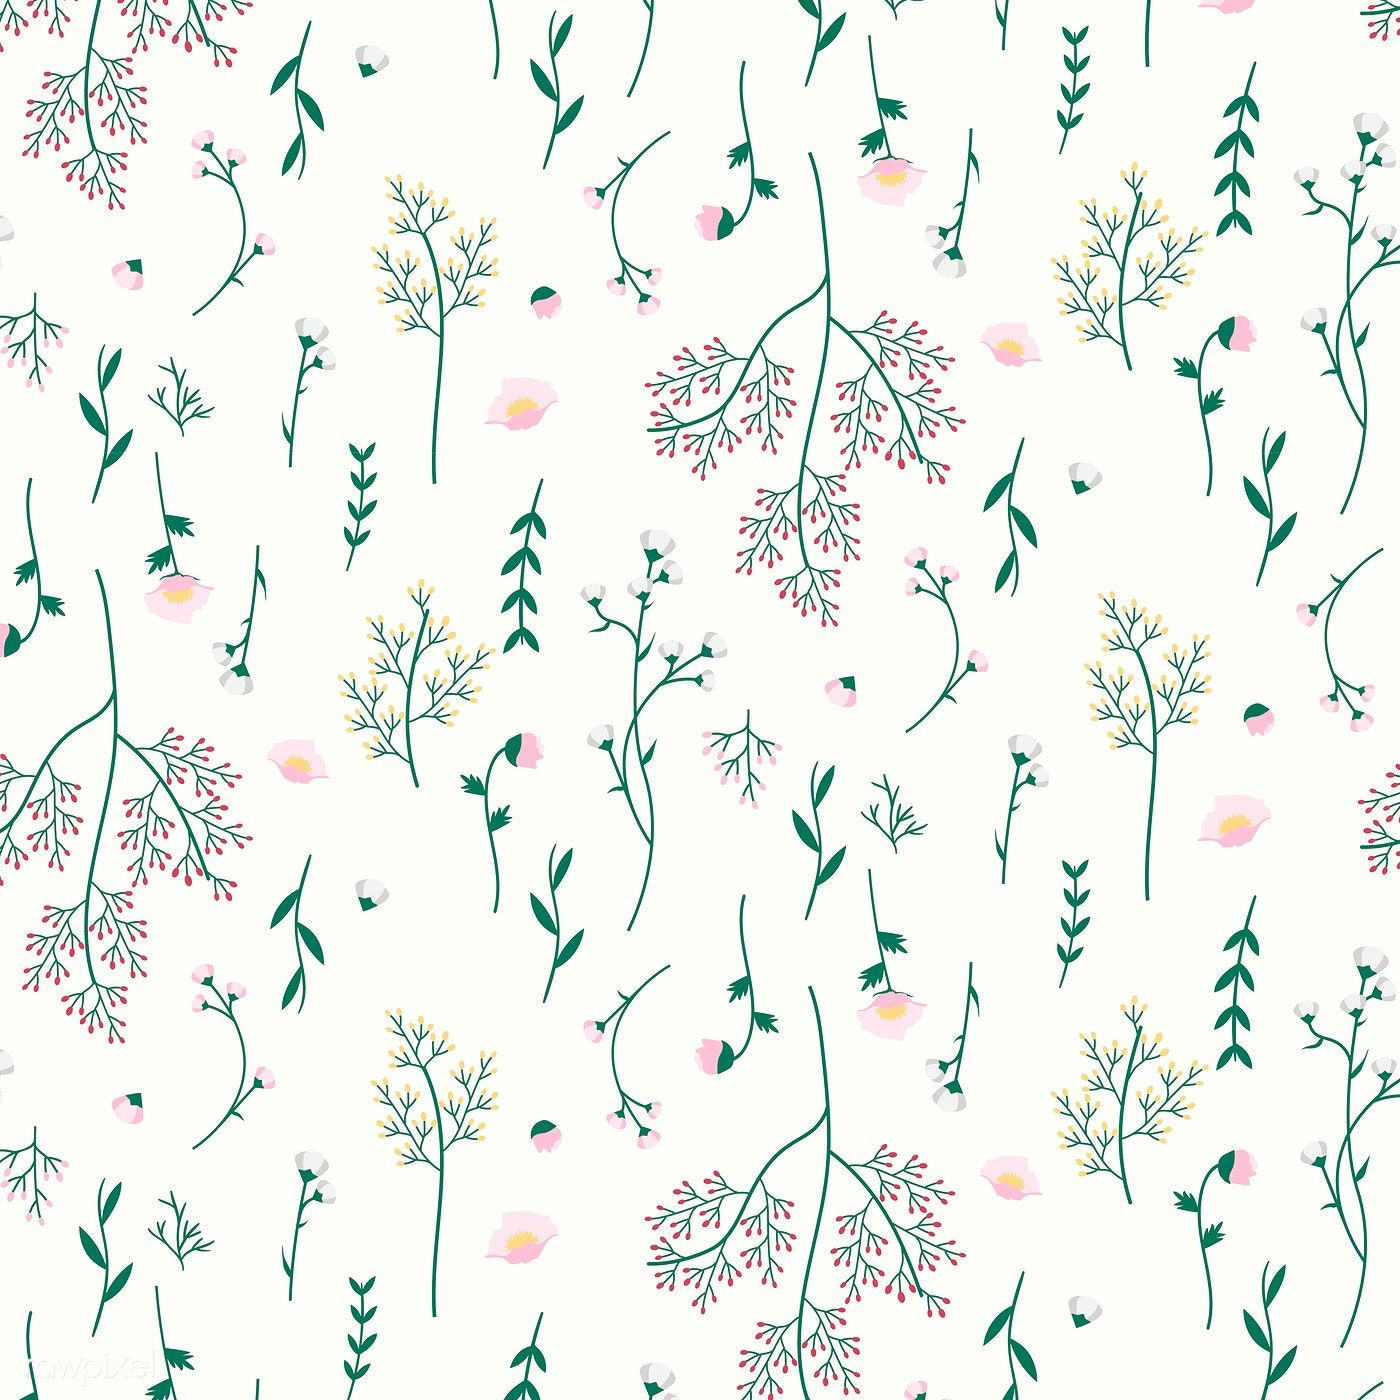 Wild Flower Seamless Pattern Vector Free Image By Rawpixel Com